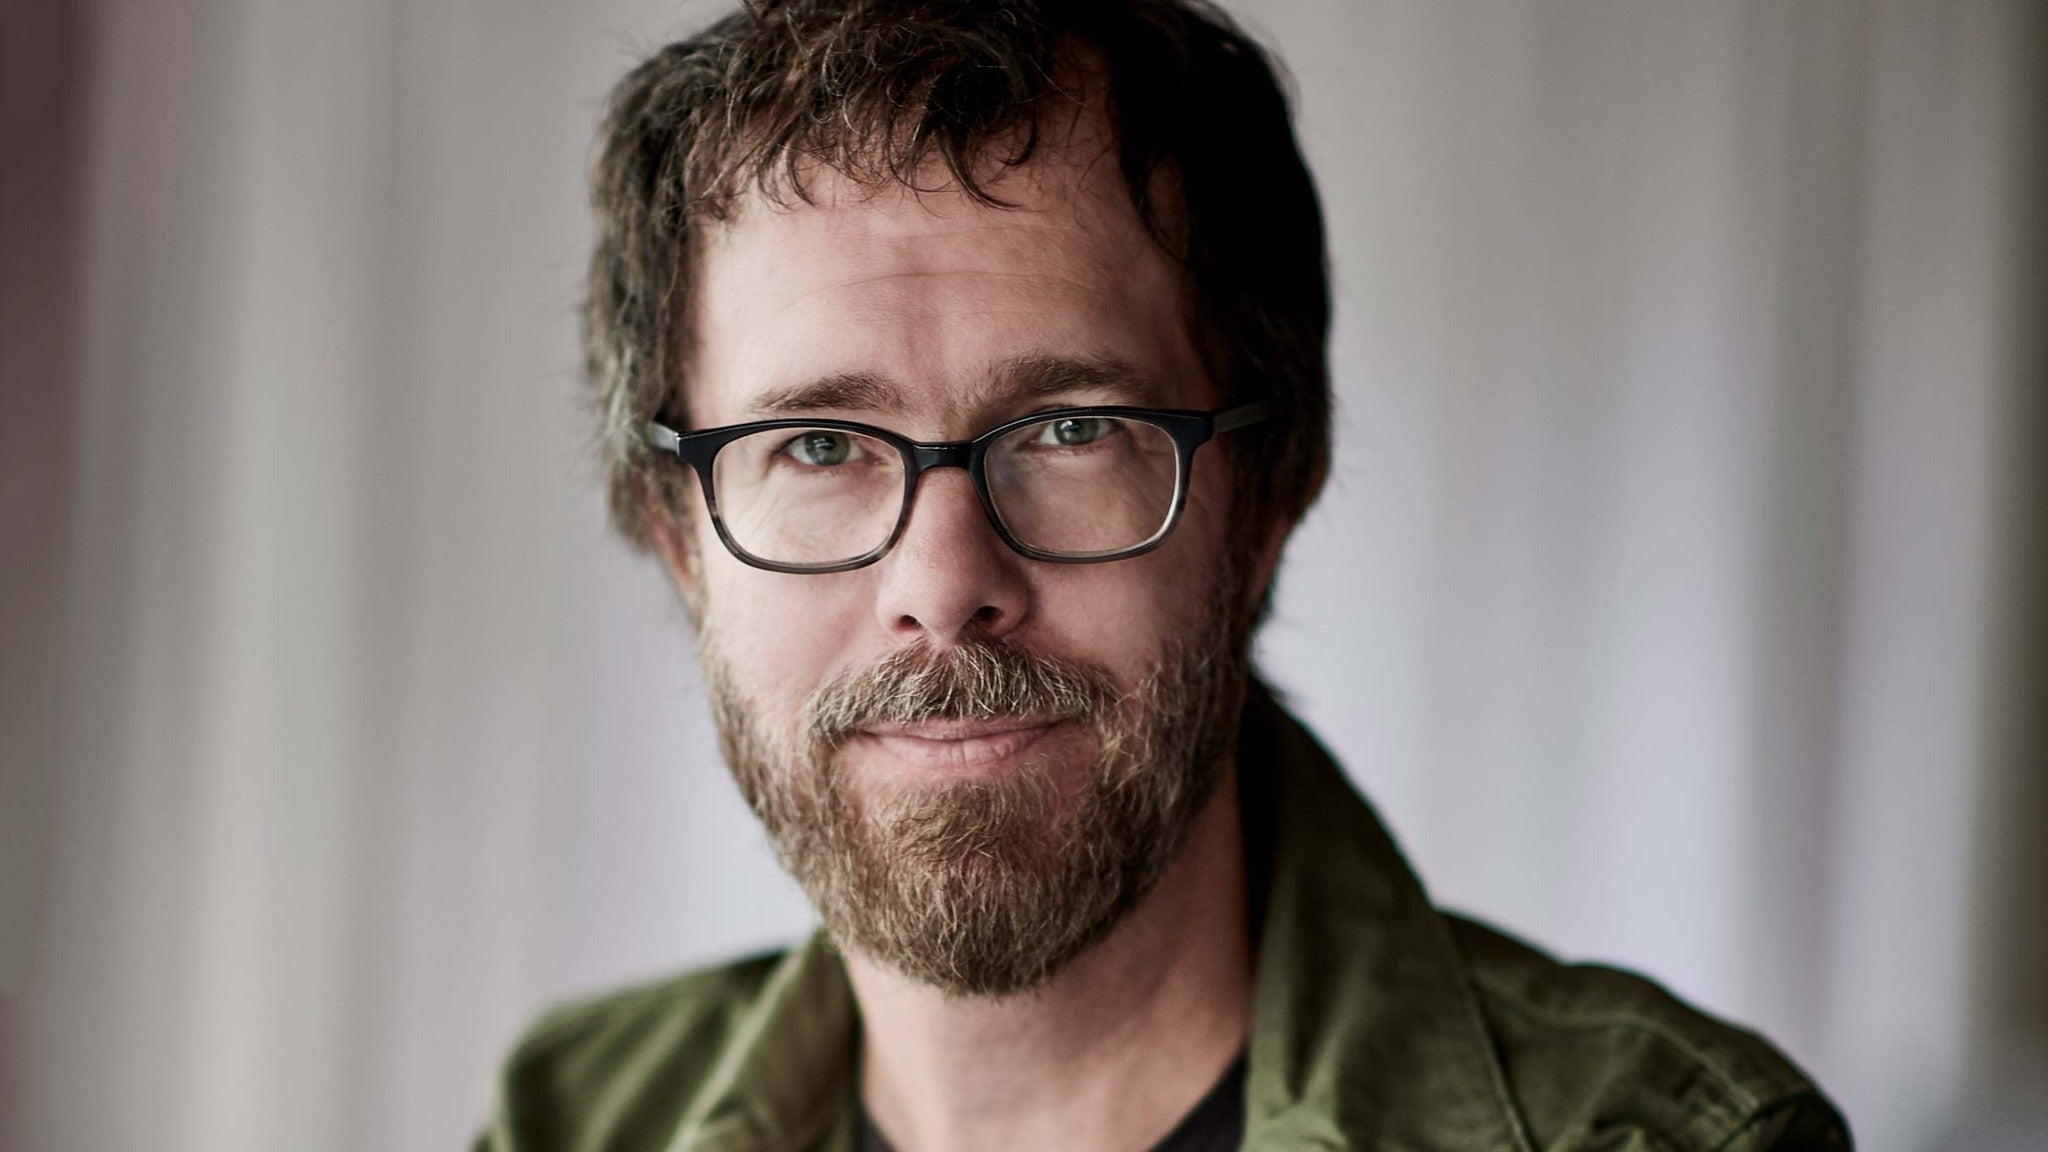 An Evening With Ben Folds at Reynolds Auditorium